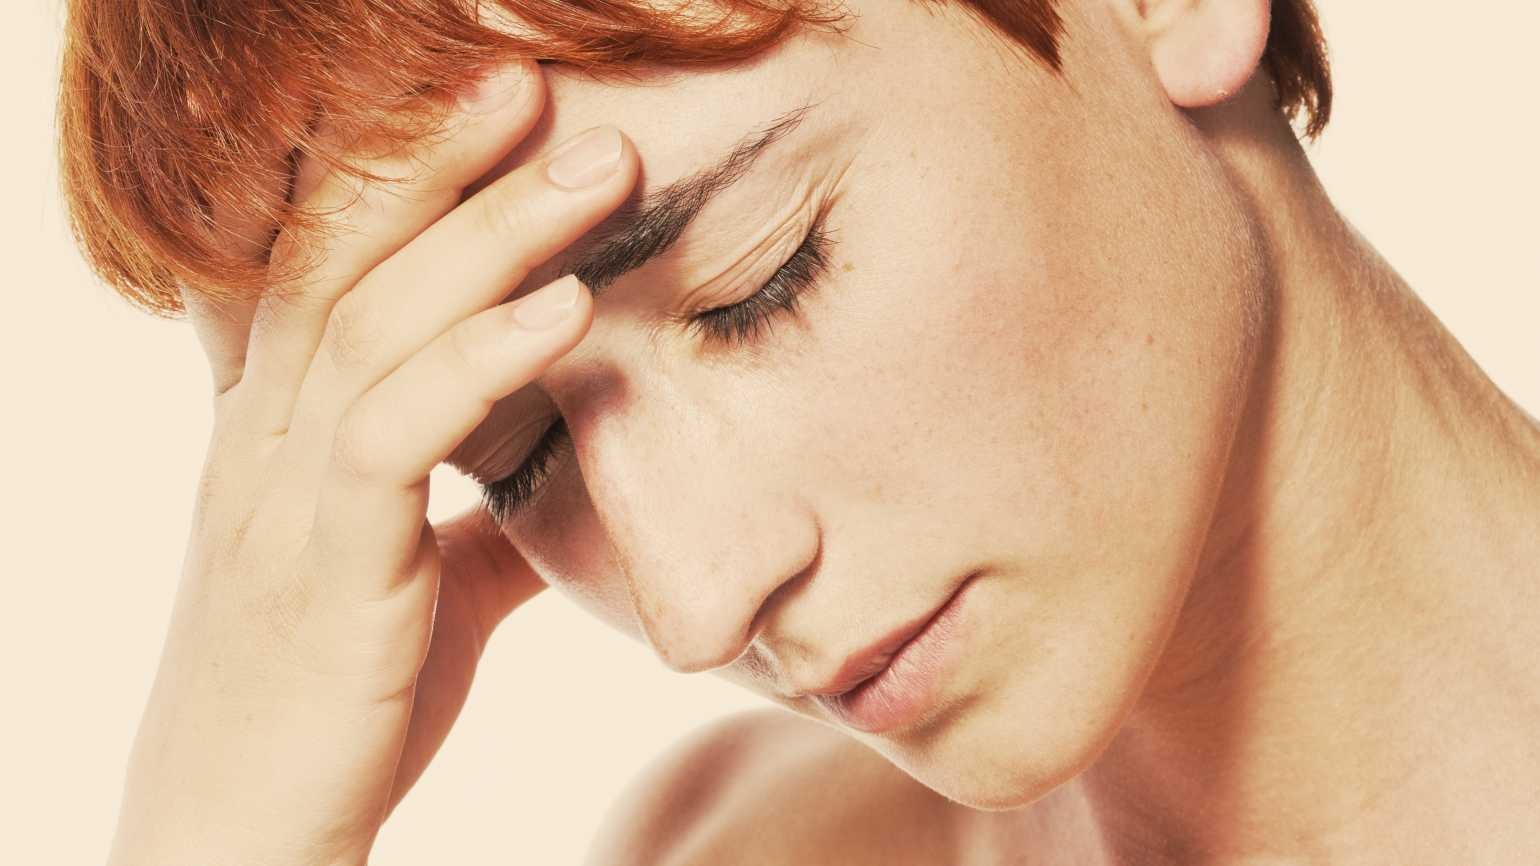 5 Tips to Deal with a Chronic Illness Diagnosis